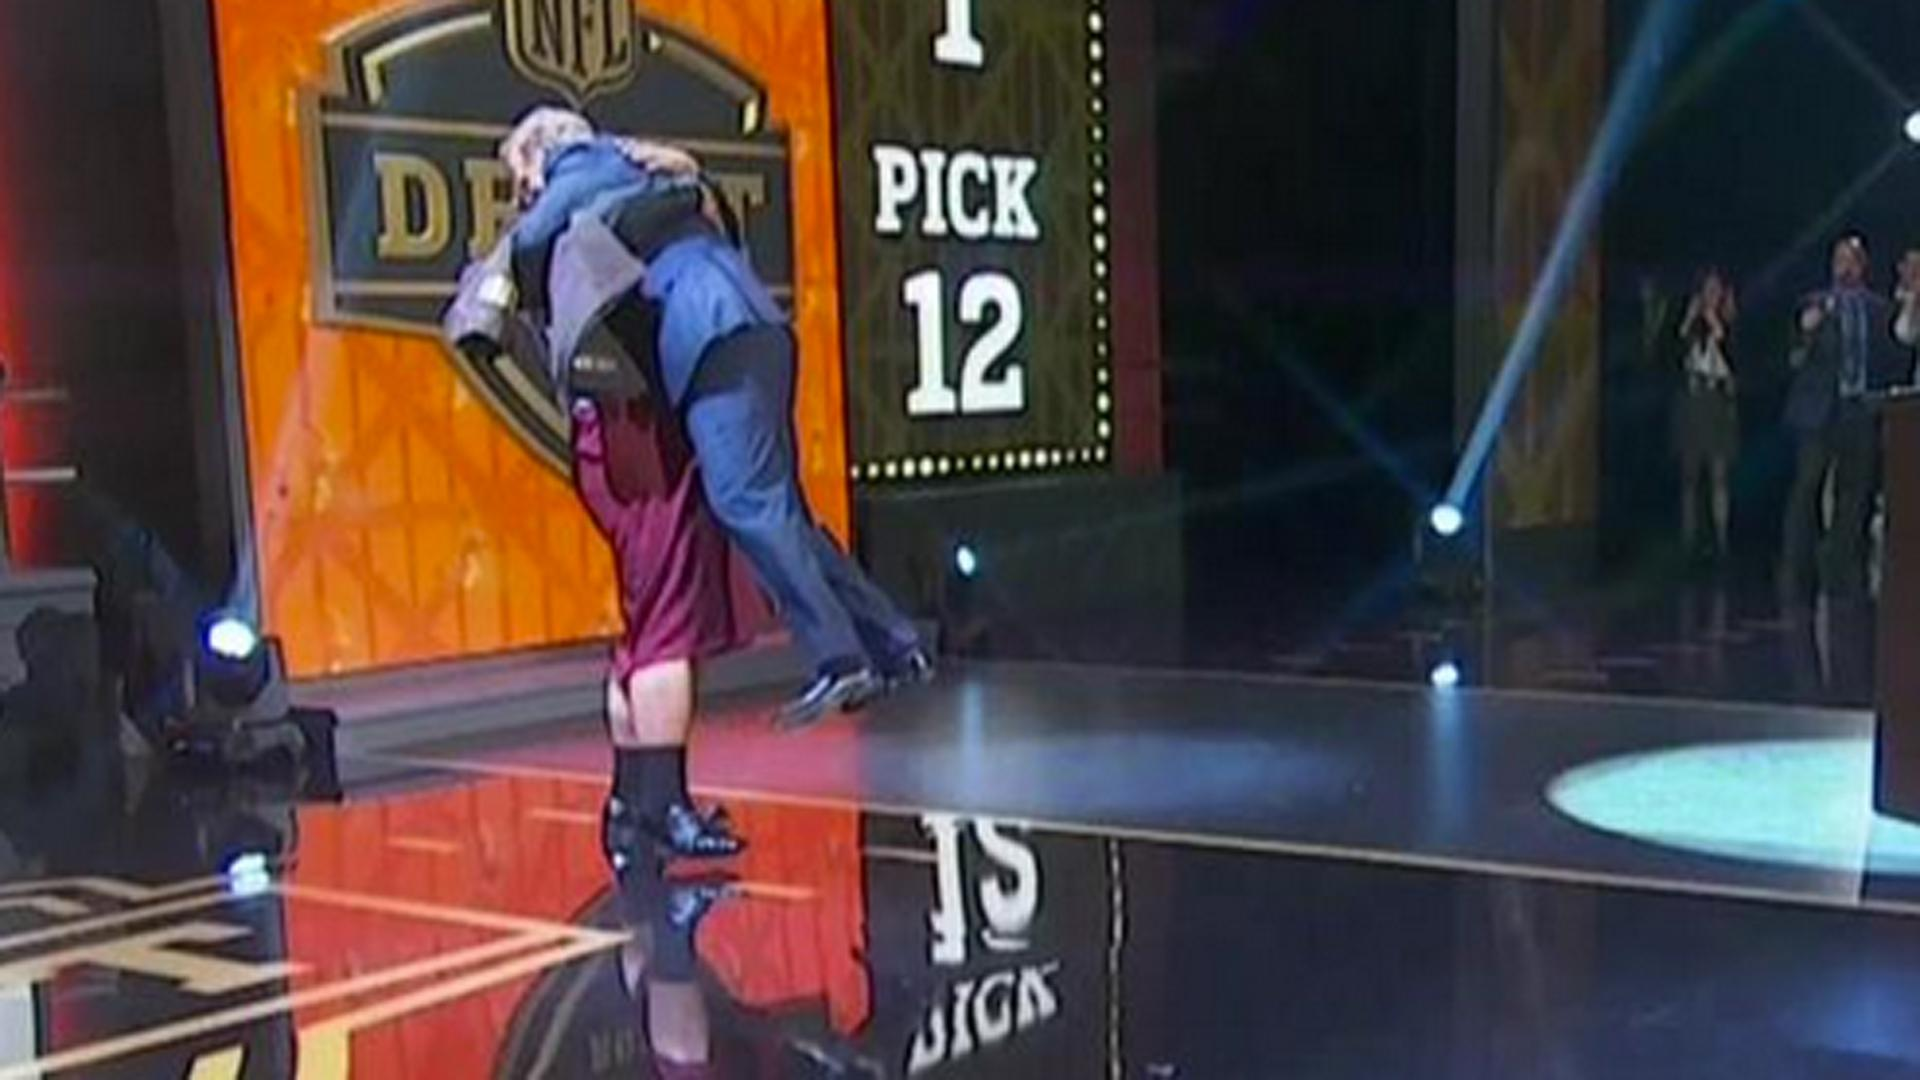 Great News, Roger Goodell Is Fully Vaccinated Just In Time To Hug All Of This Years Draftees